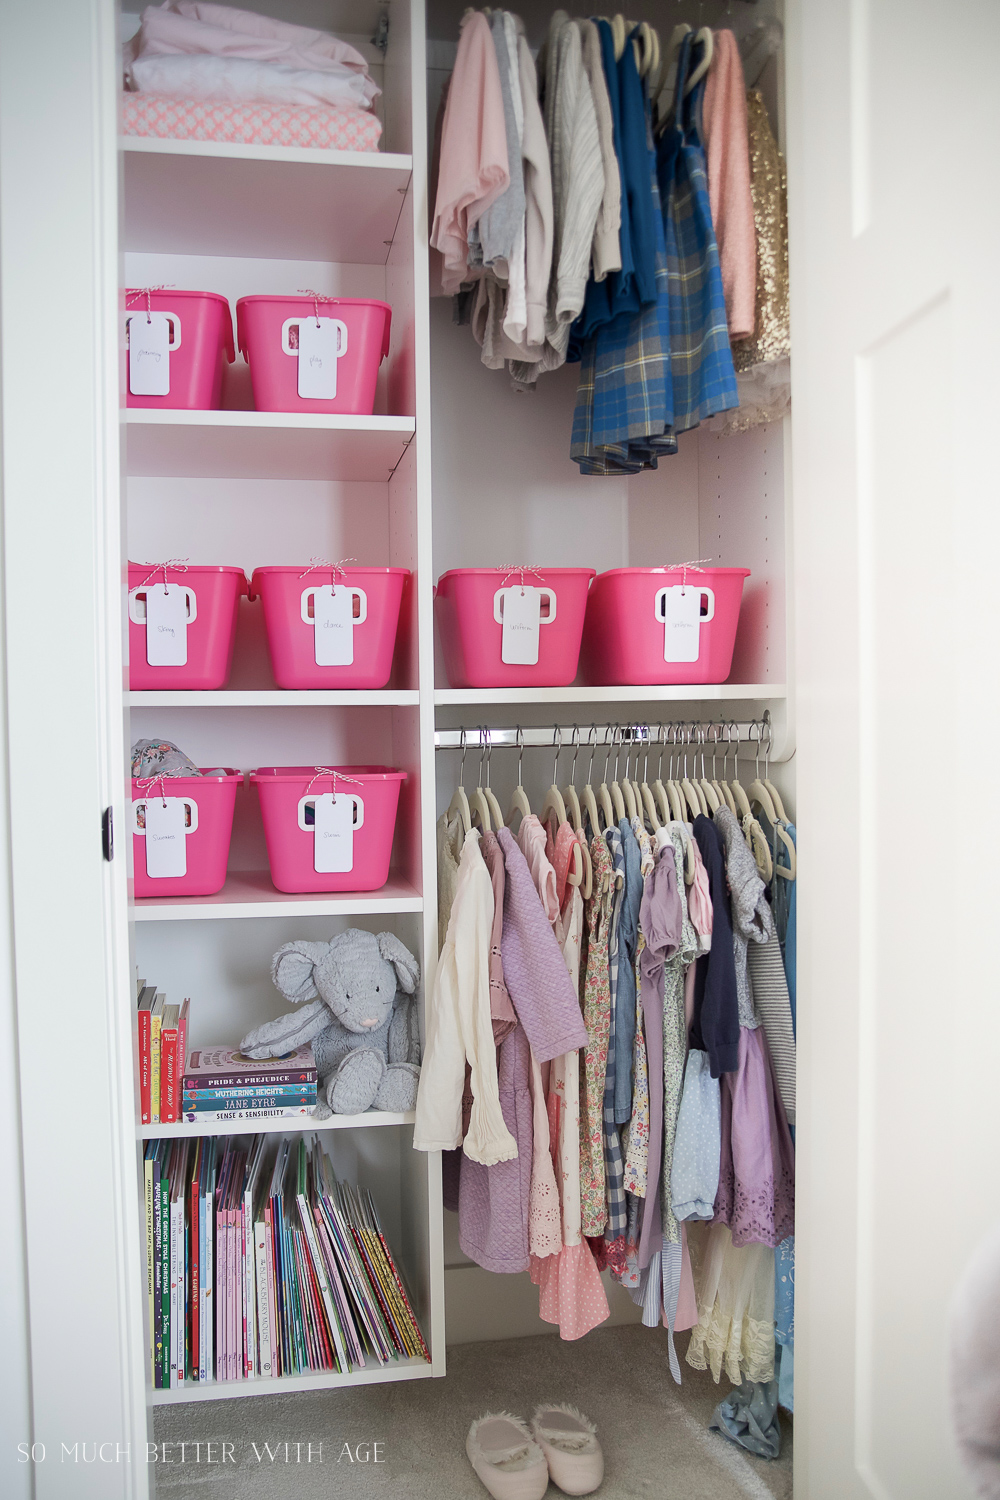 Kids Closet Organization with Dollar Store Bins/dresses hanging in closet - So Much Better With Age